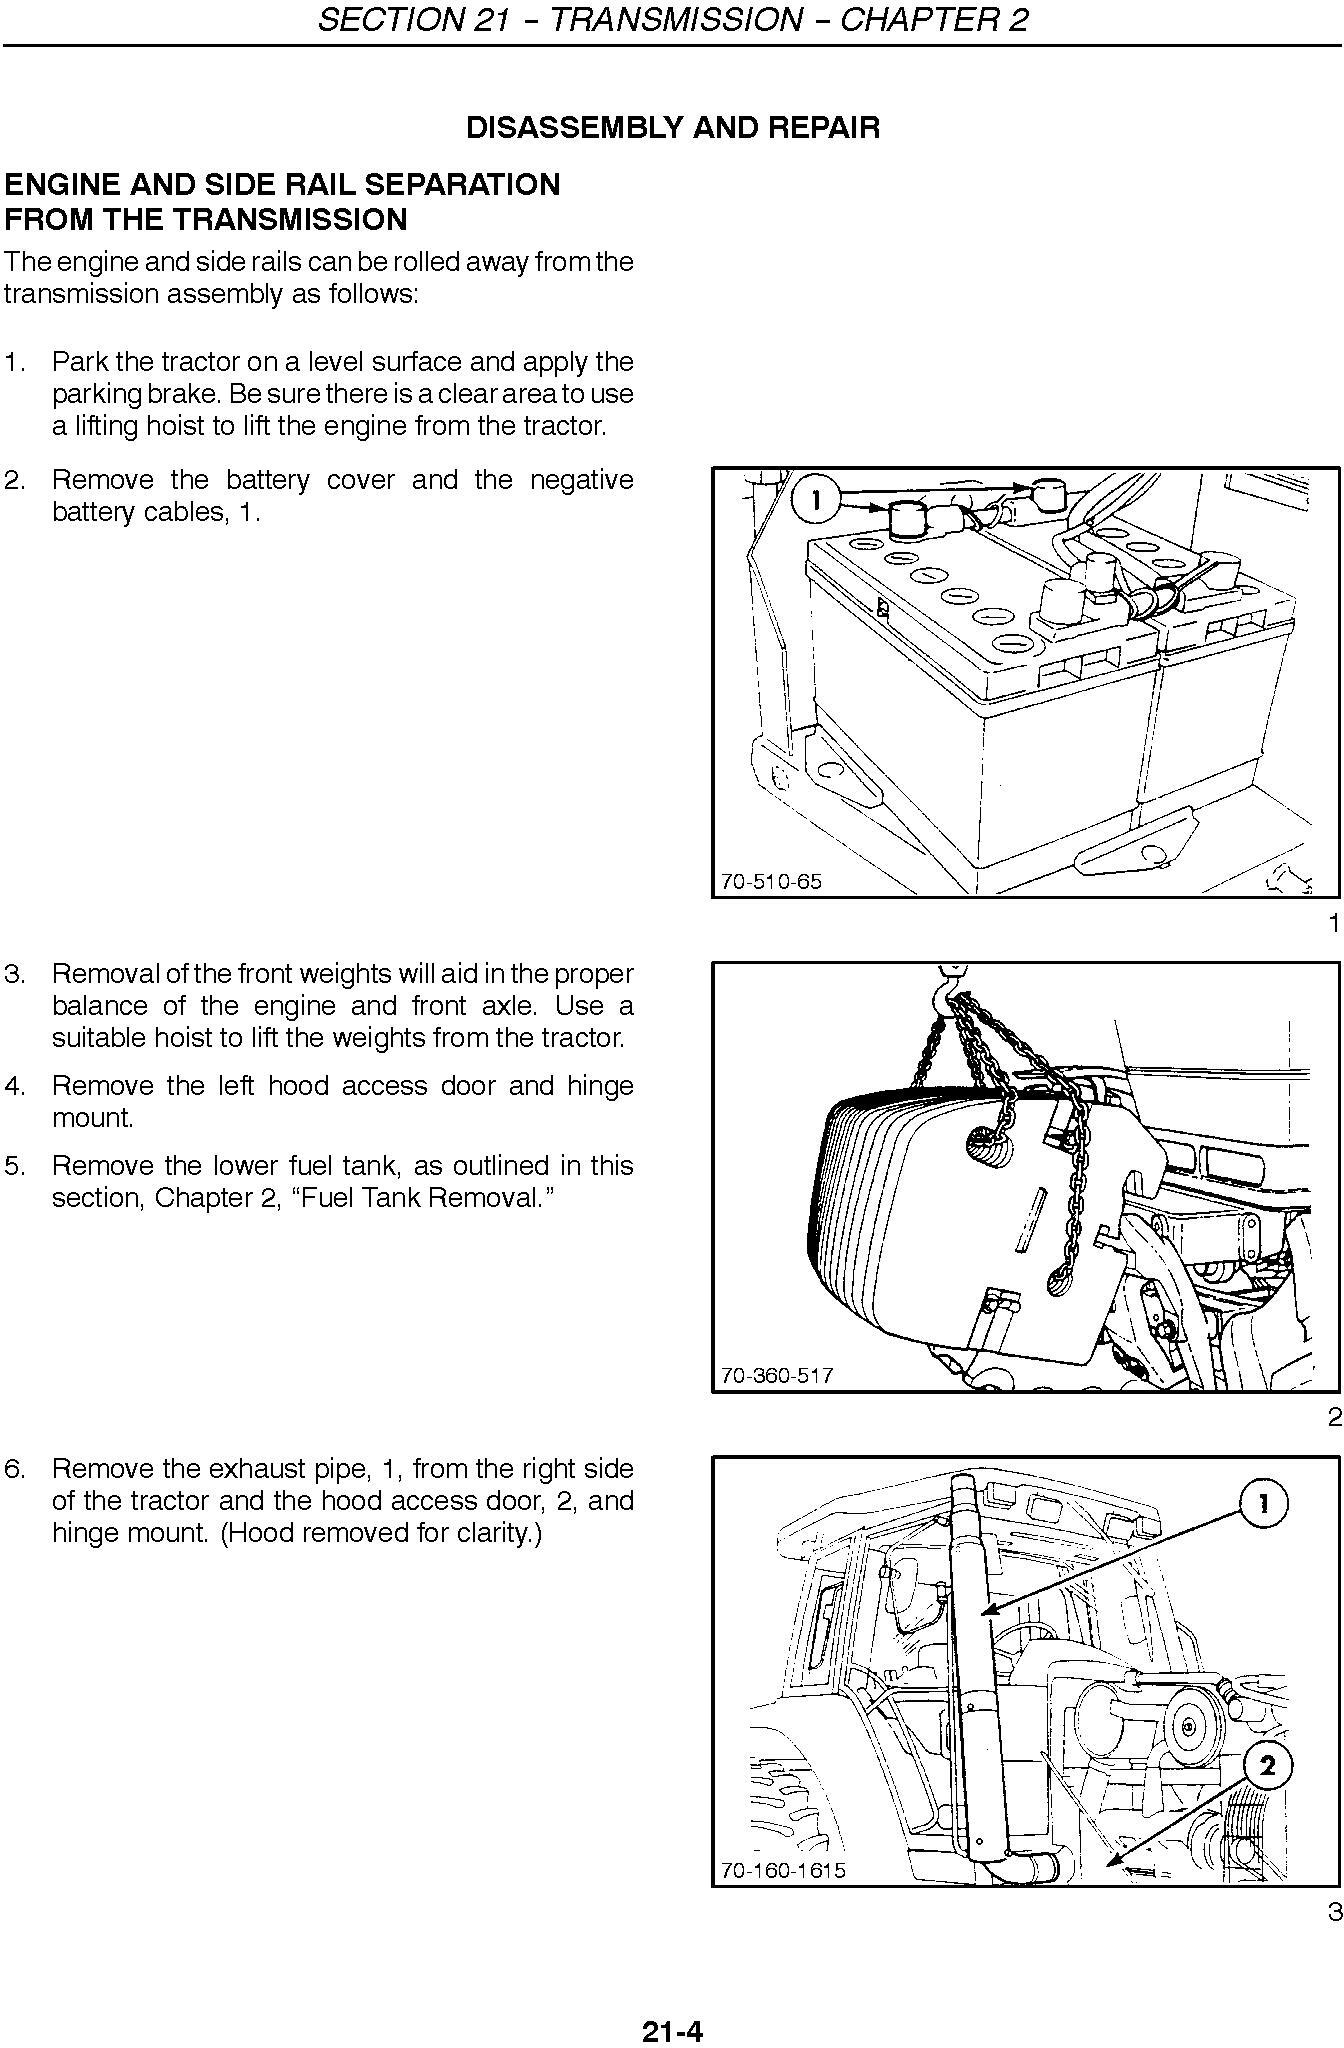 New Holland 8670, 8770, 8870, 8970, 8670A, 8770A, 8870A, 8970A Tractor Service Manual - 2